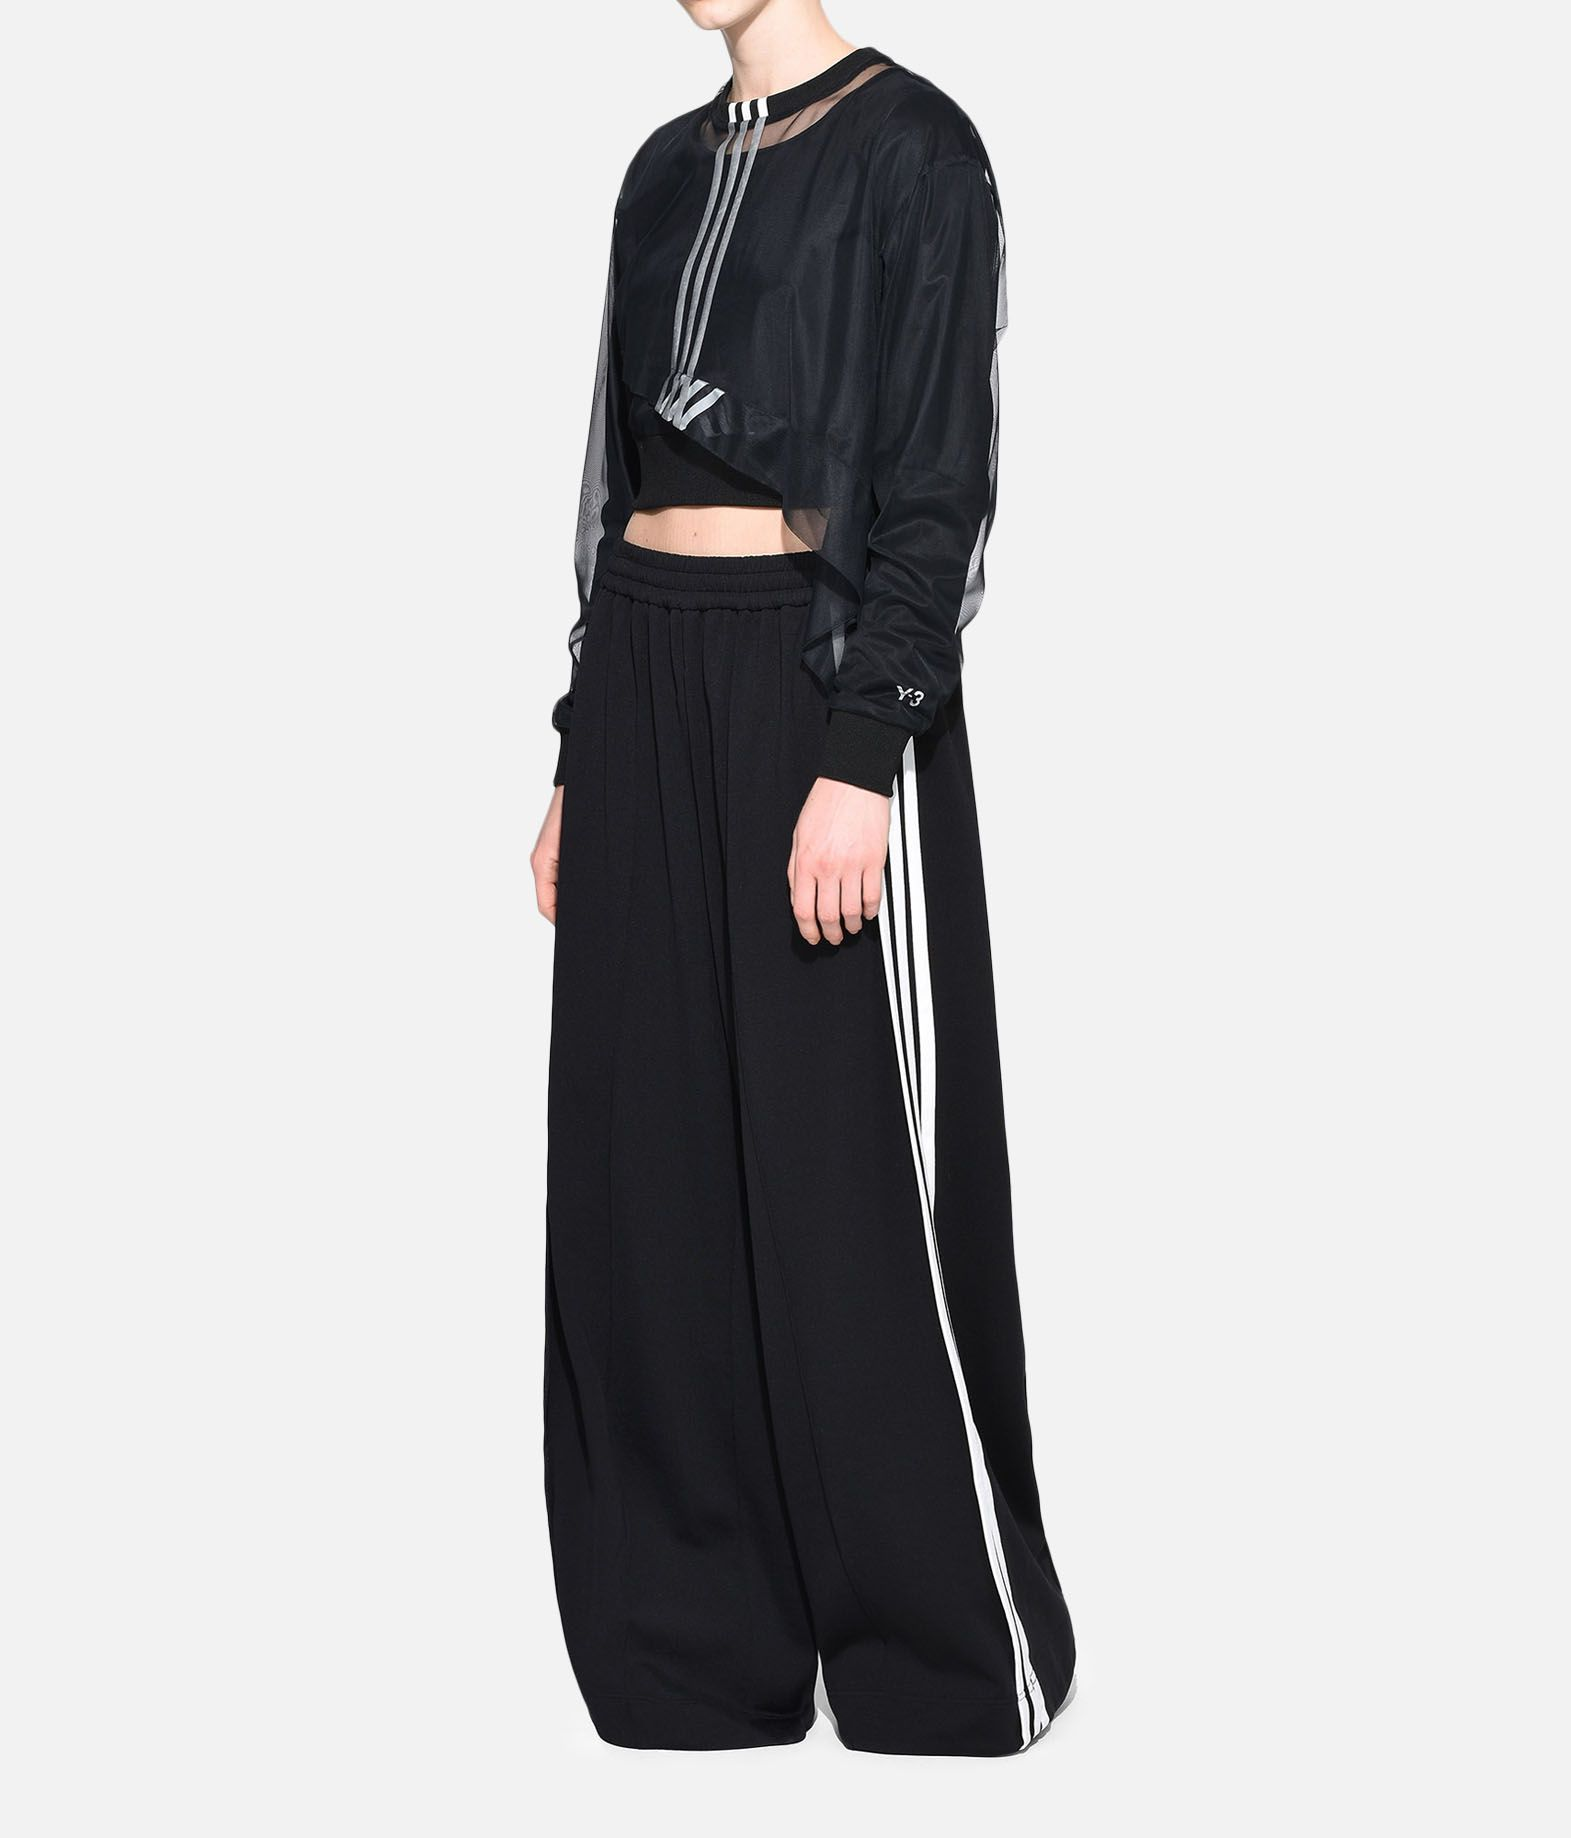 Y-3 Y-3 3-Stripes Mesh Cropped Tee Long sleeve t-shirt Woman a